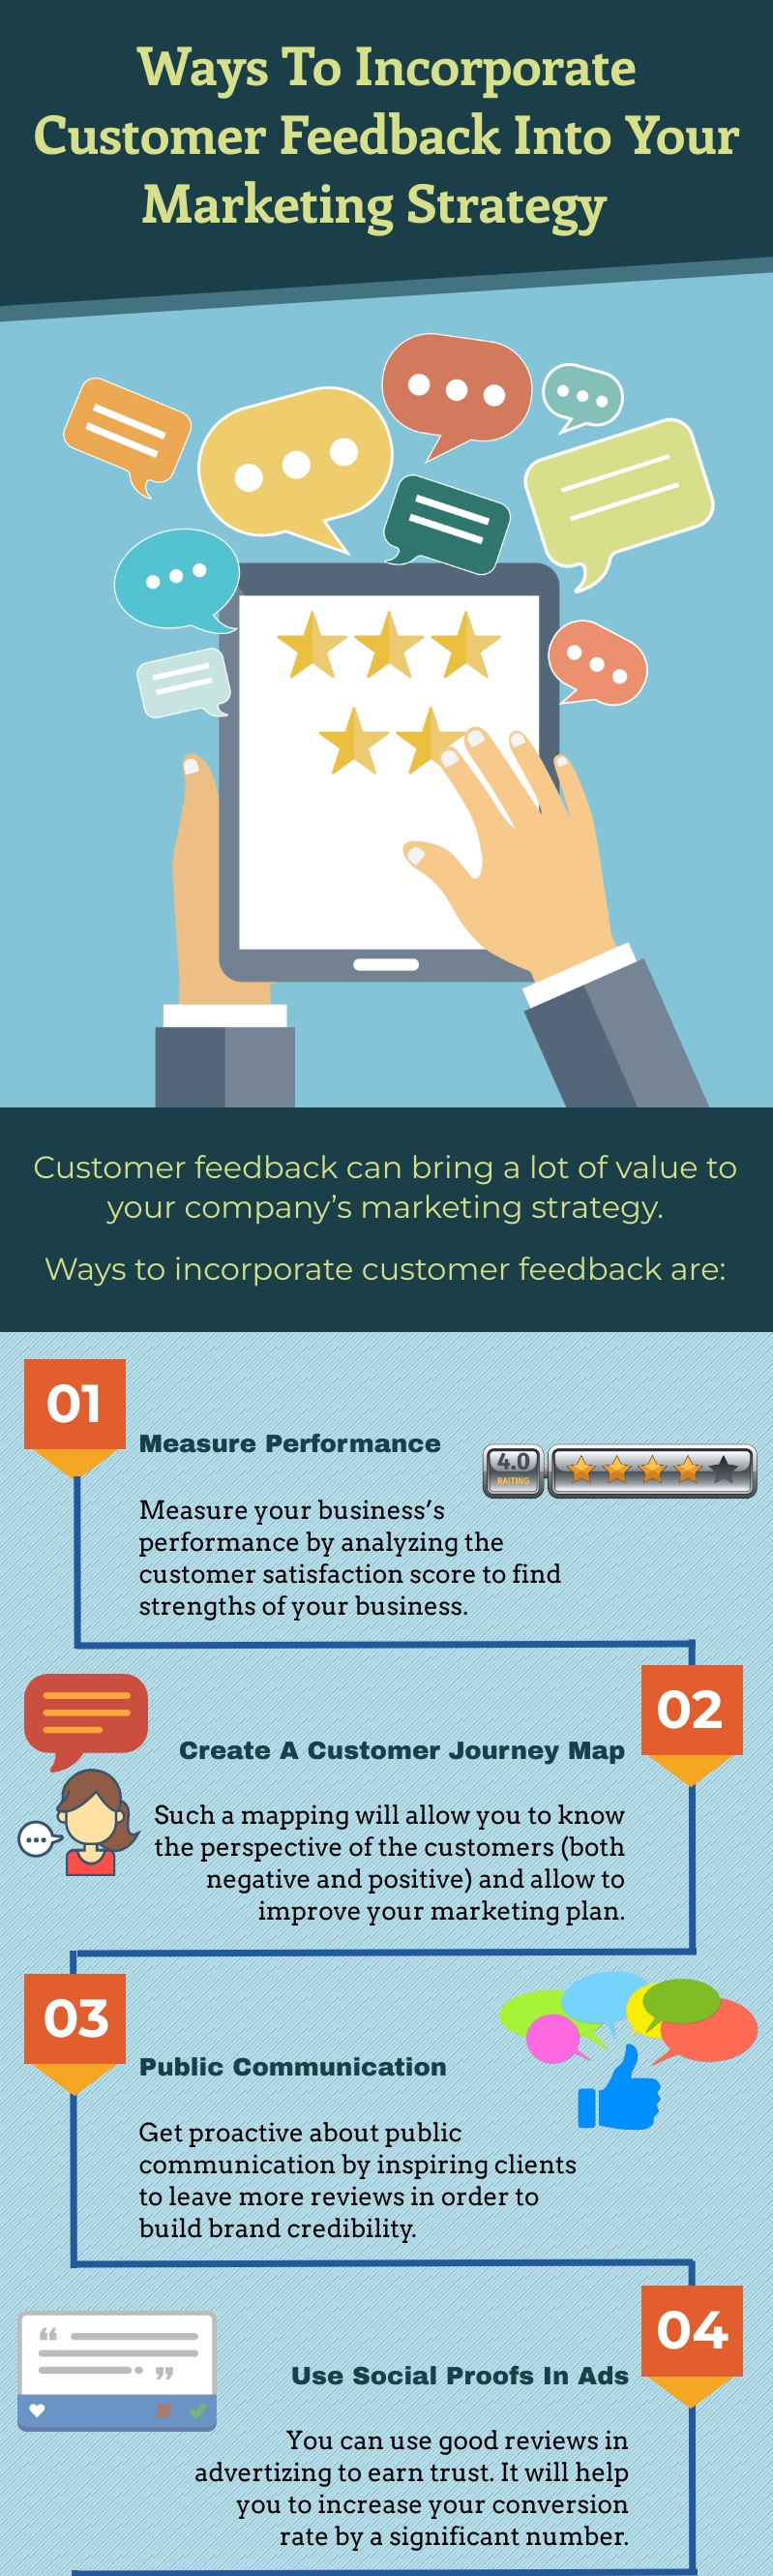 Ways-To-Incorporate-Customer-Feedback-Into-Your-Marketing-Strategy